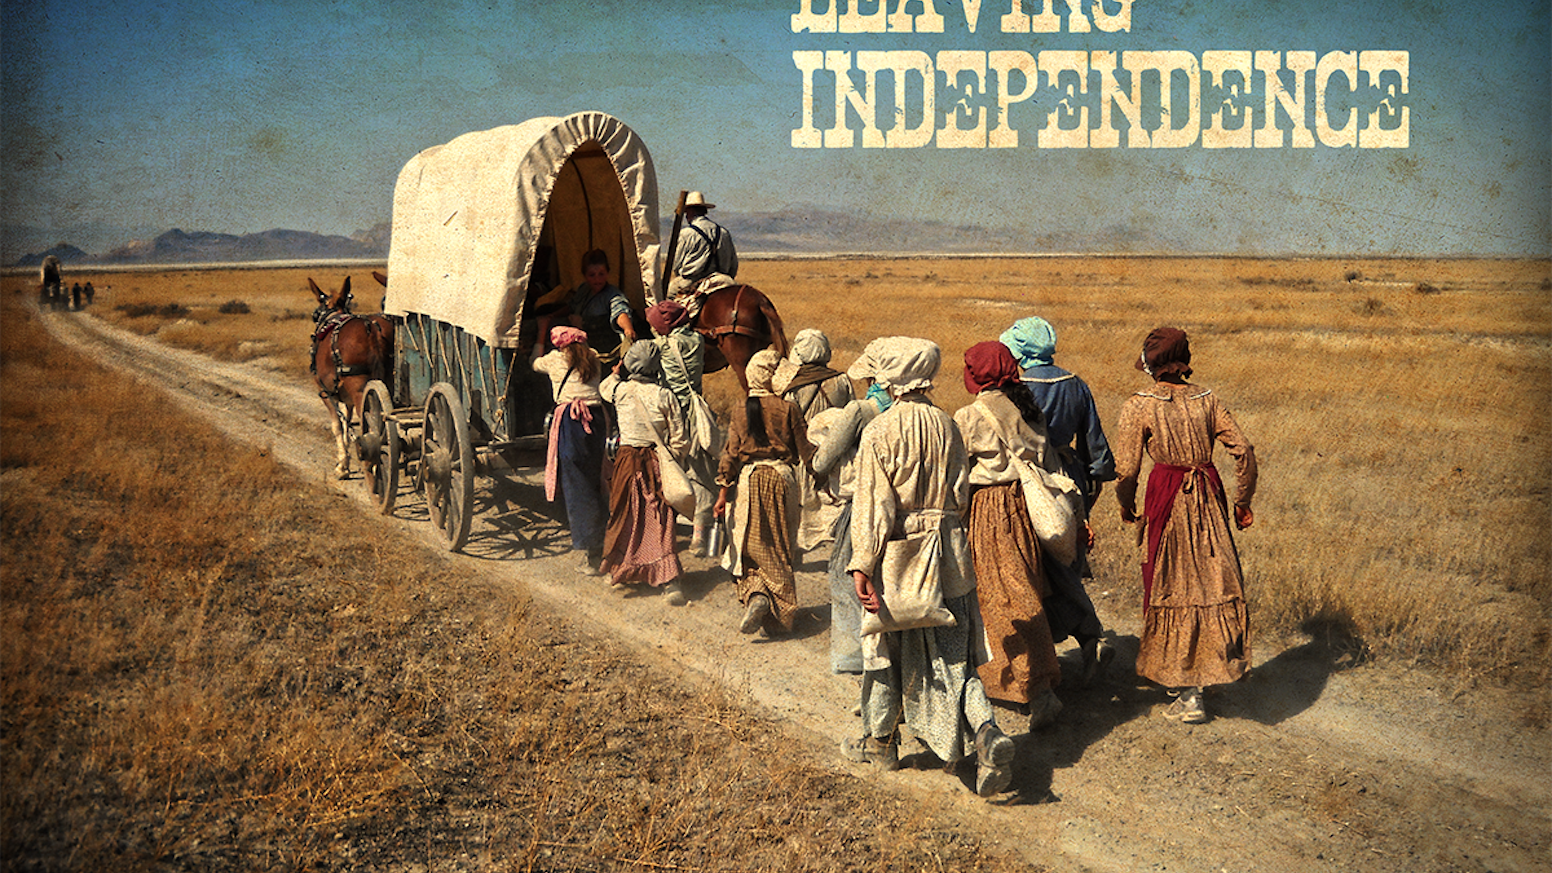 Leaving Independence is an episodic feature about discovery, character growth development, and independent thinking.